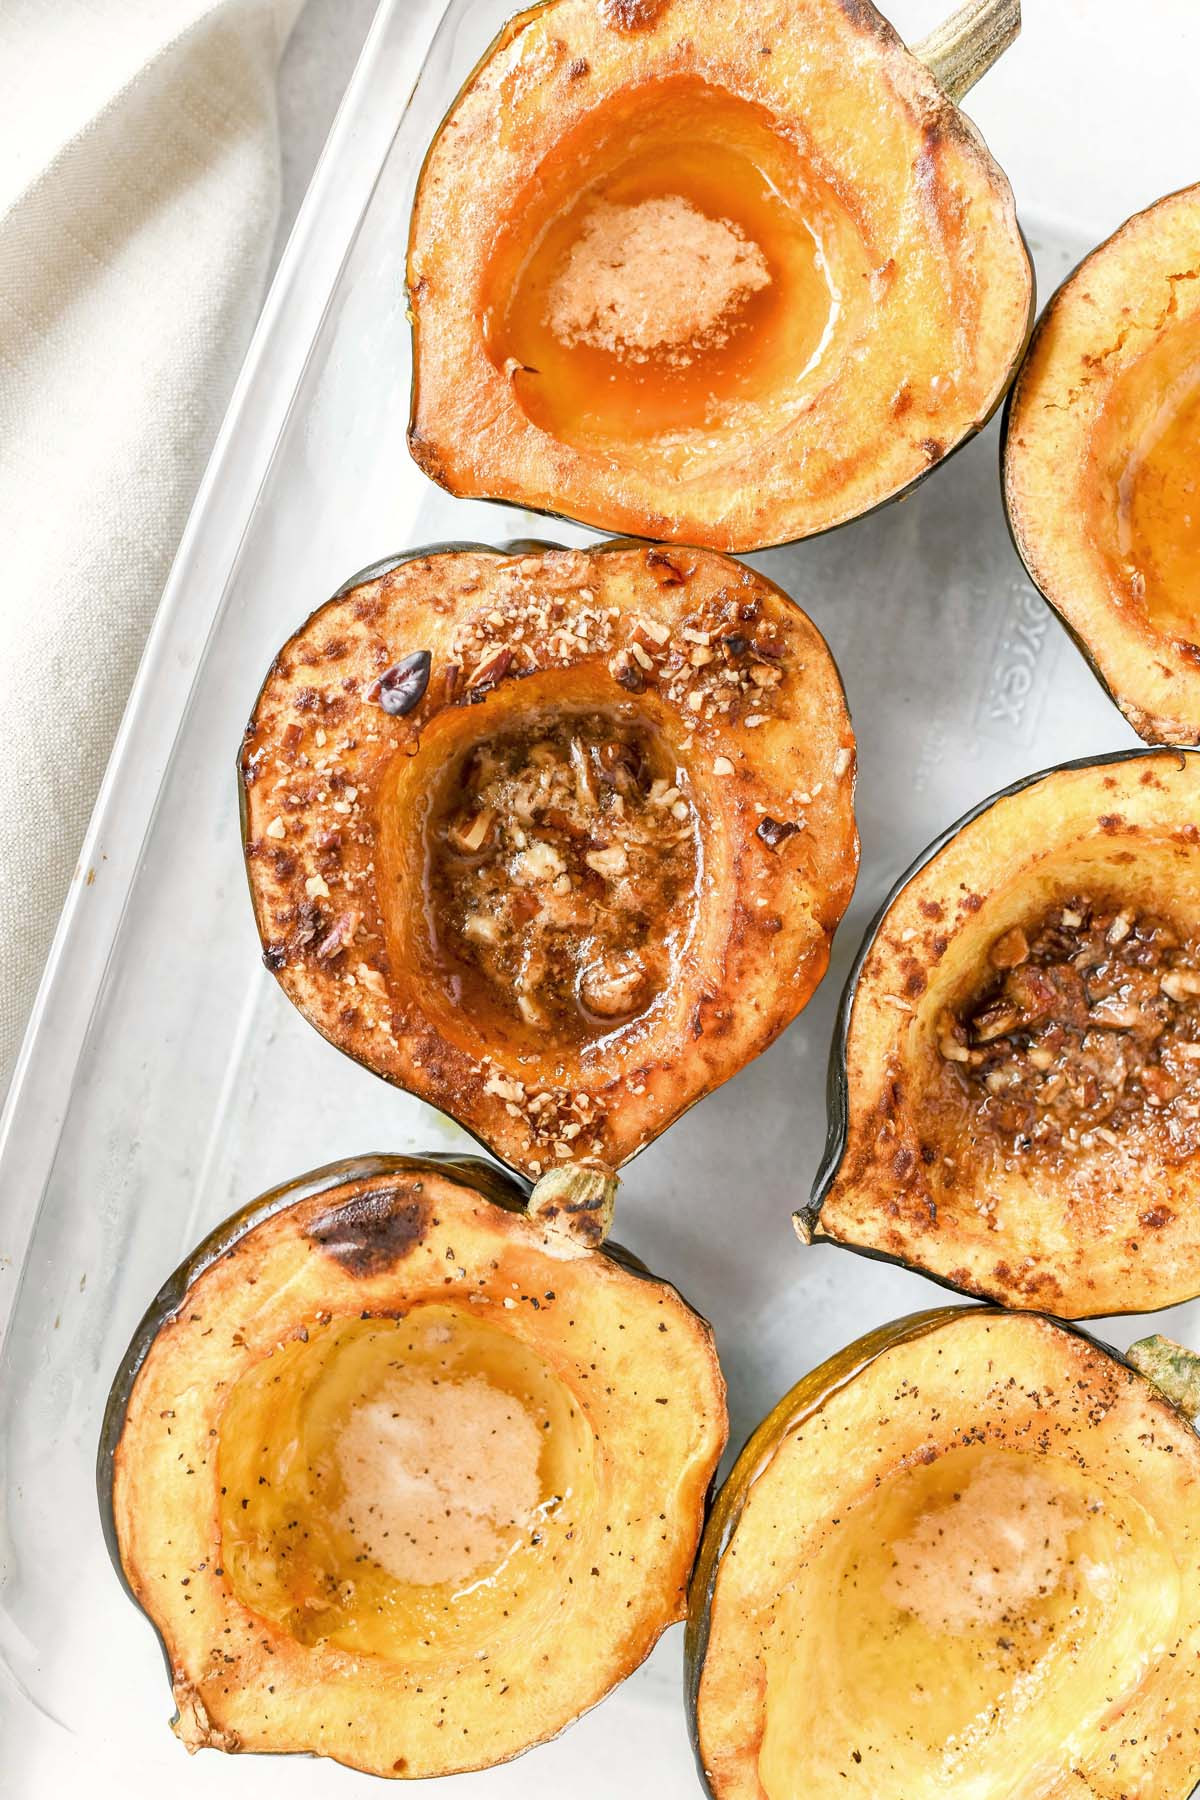 Acorn Squash roasted with butter and nuts in a clear, glass dish.